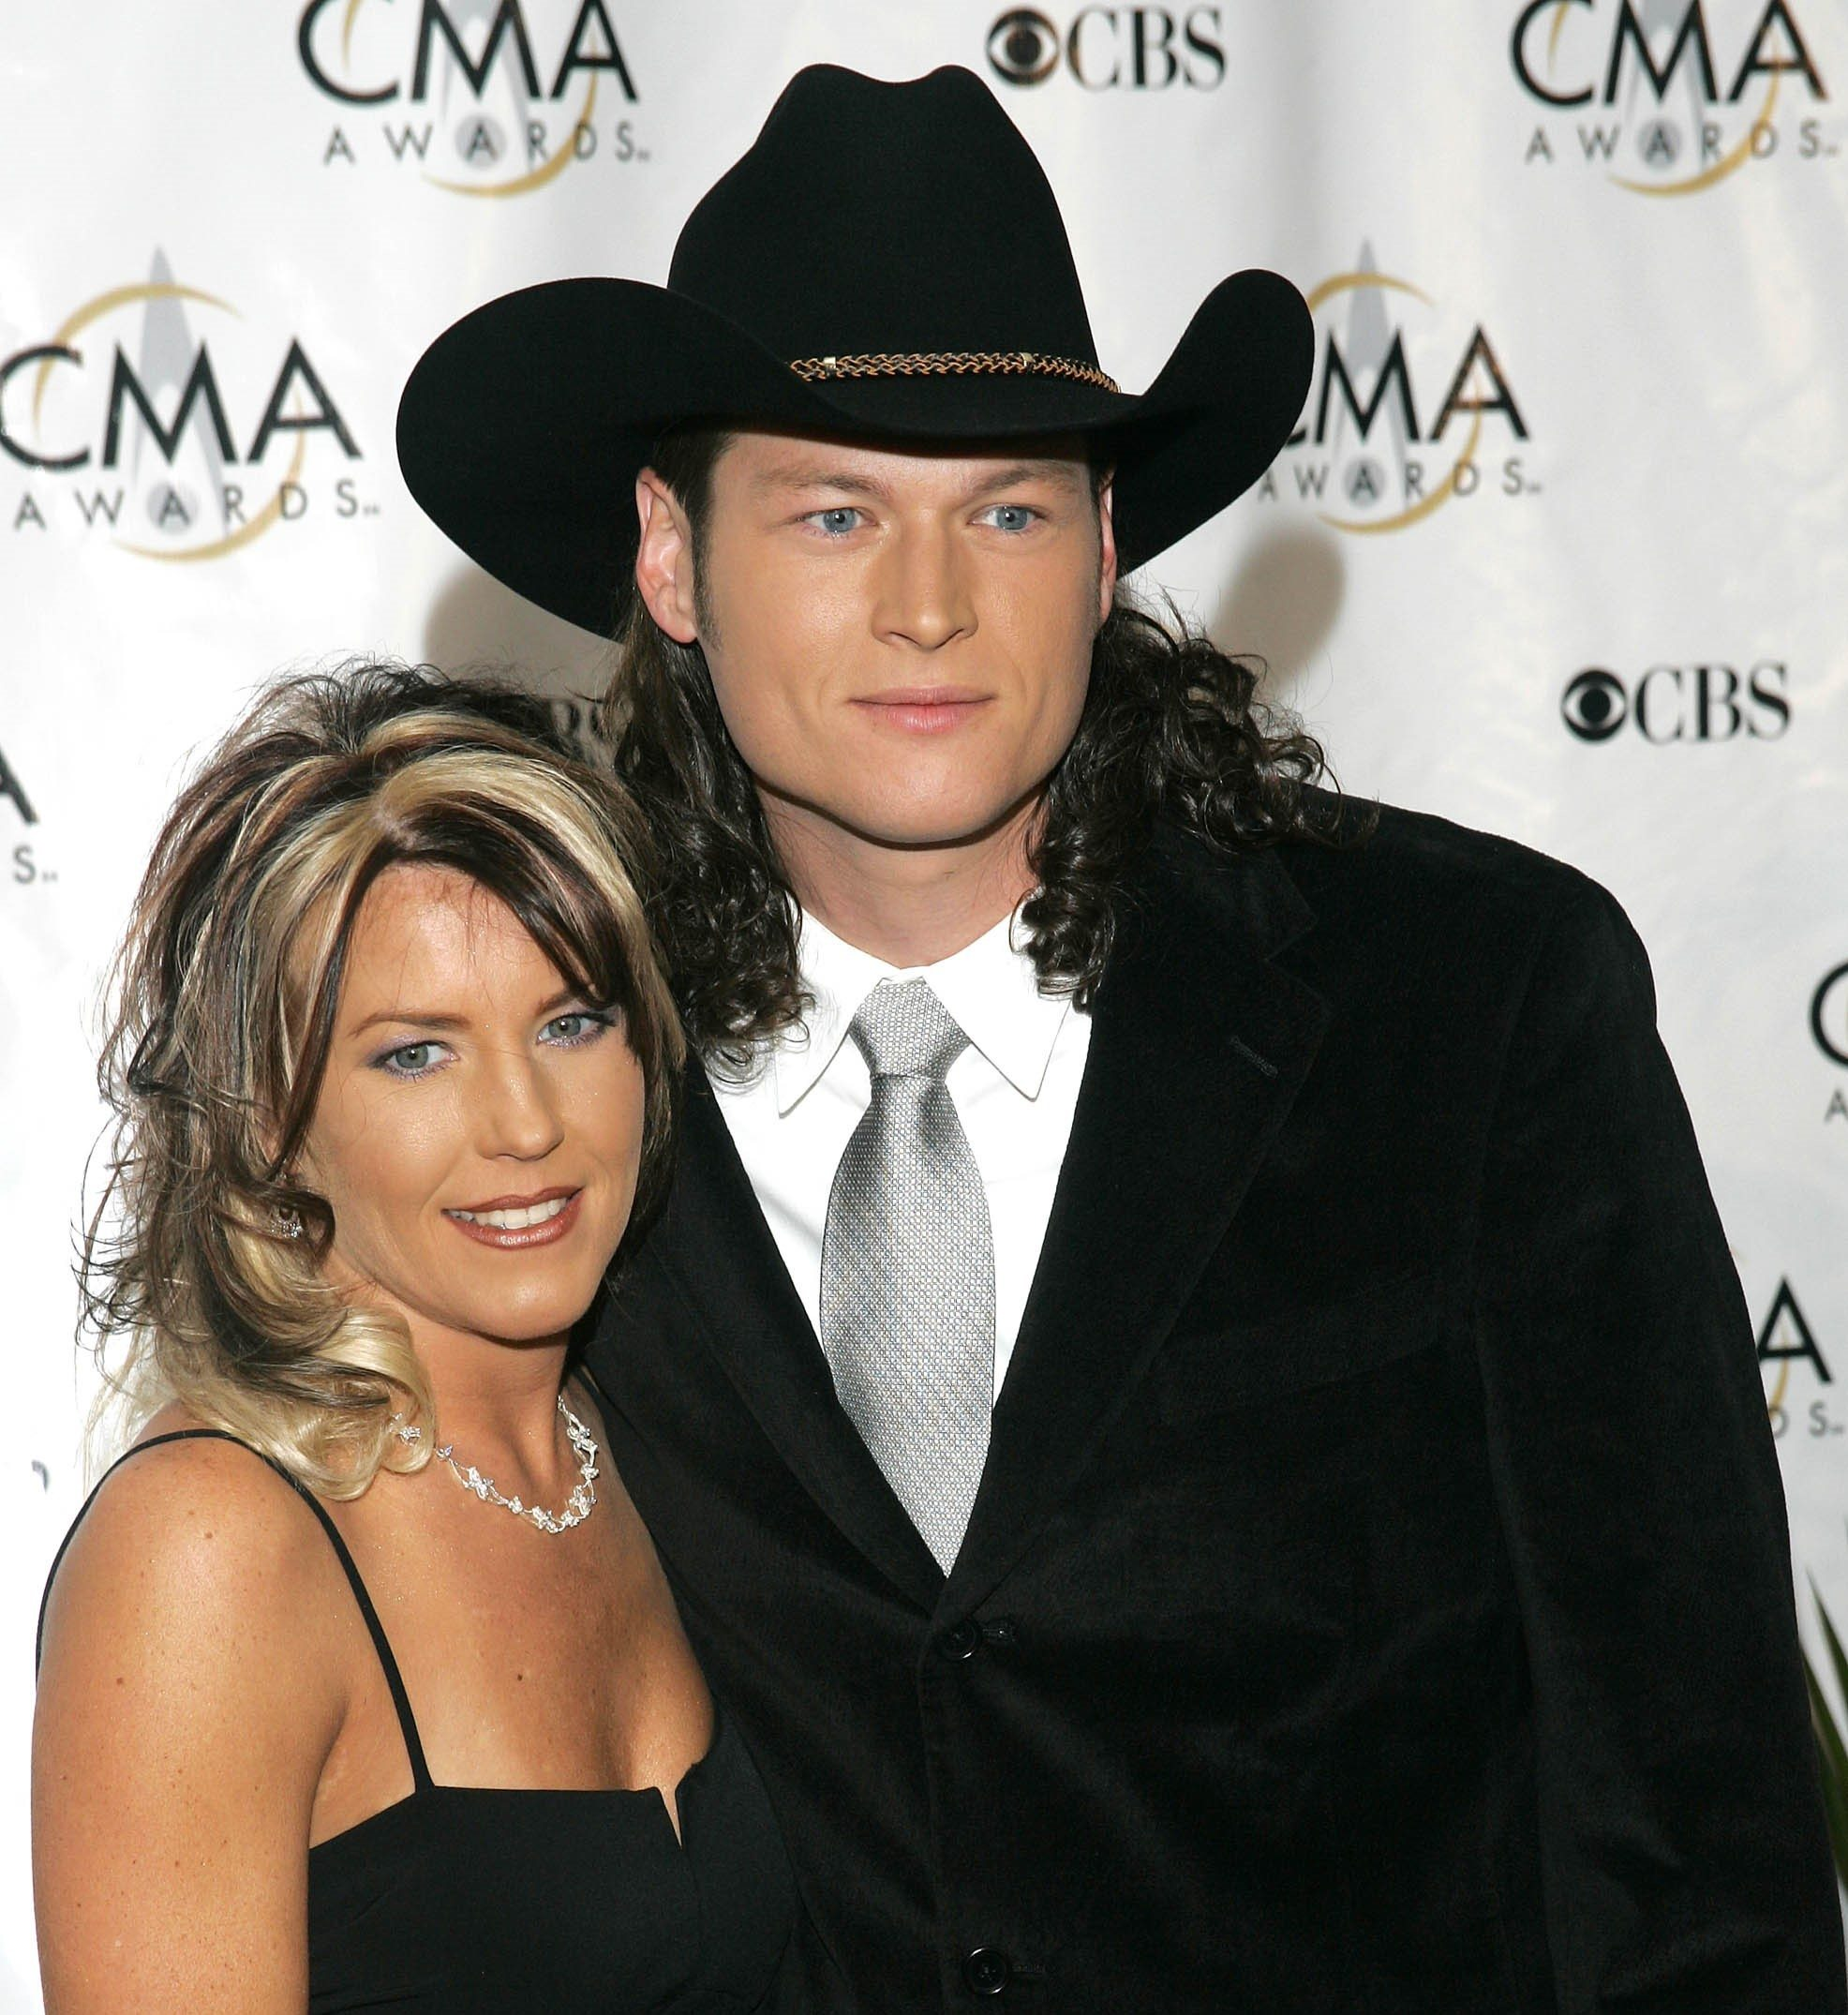 Blake Shelton's height wife1